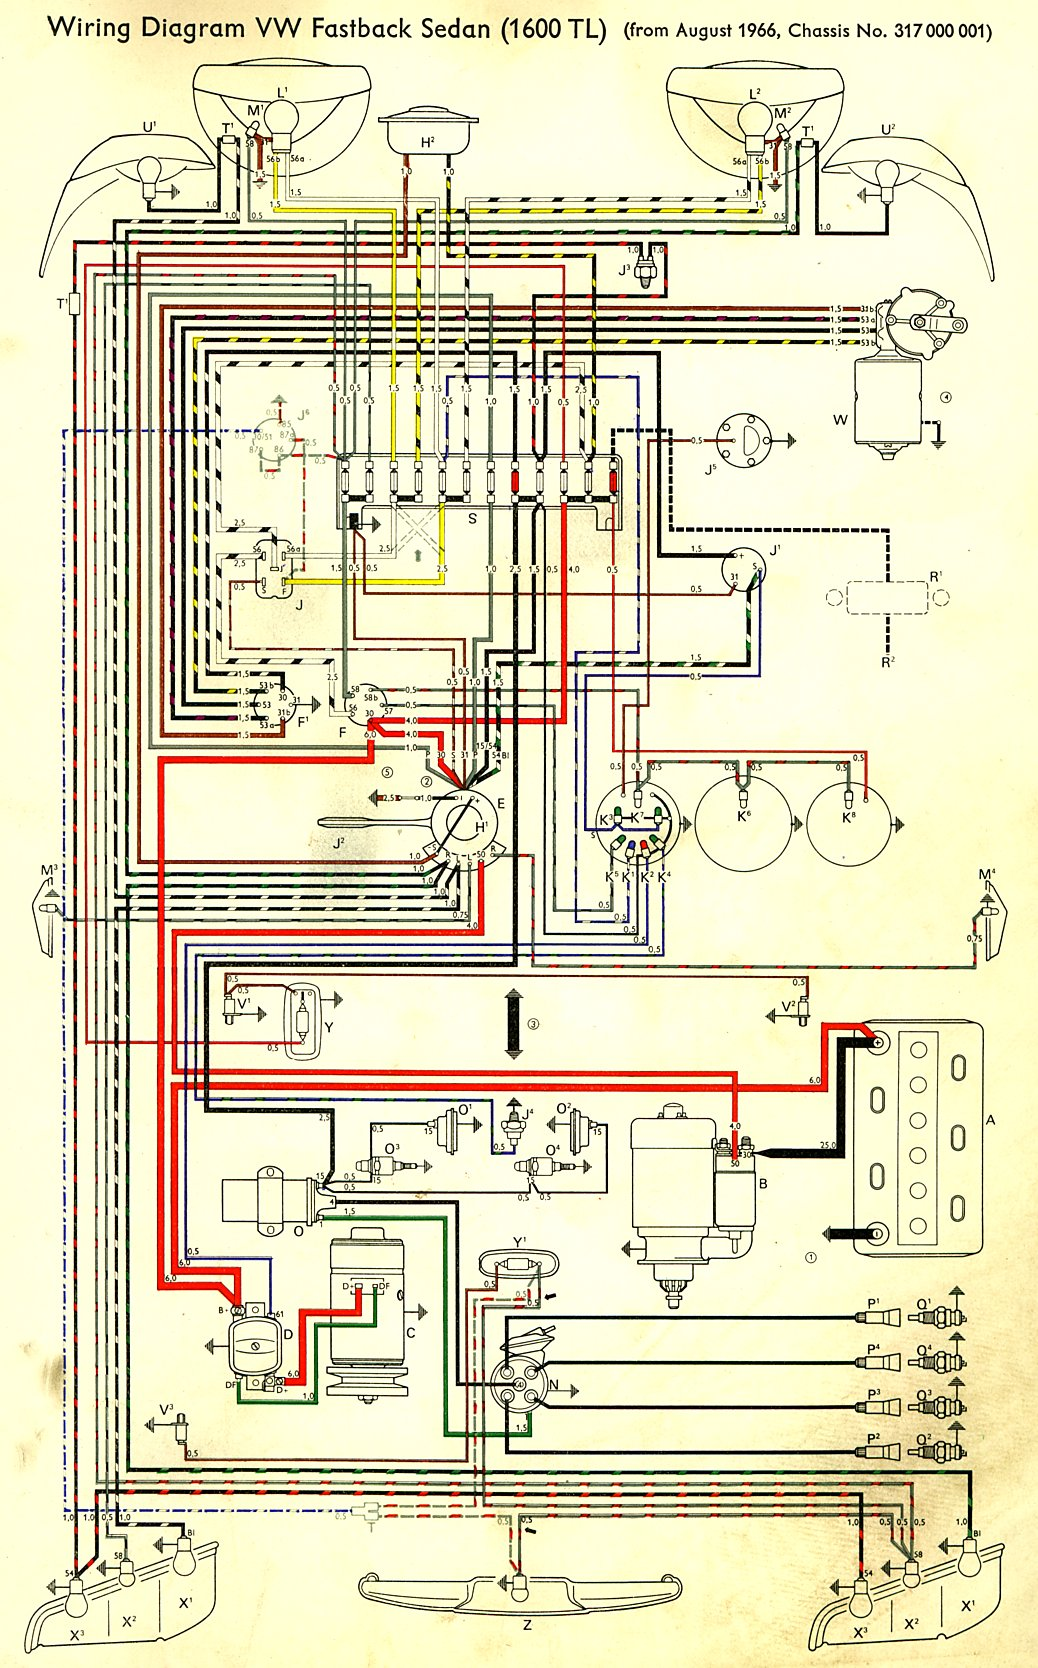 3 1 Engine Electrical Diagram Simple Wiring Page Pontiac Grand Prix Thesamba Com Type Diagrams 2004